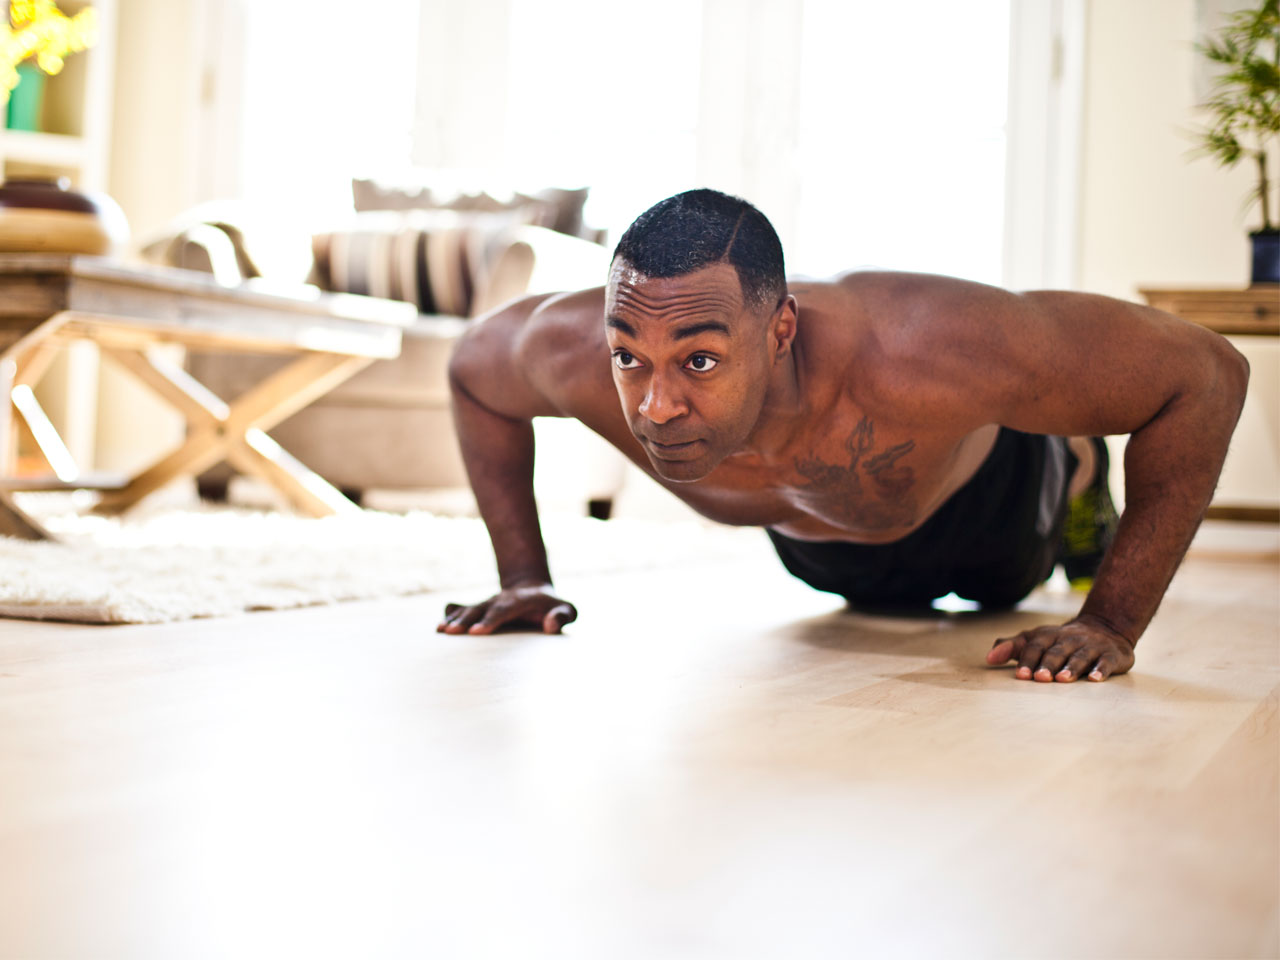 Sports and acl injuries avoid the new year s resolution crowd at